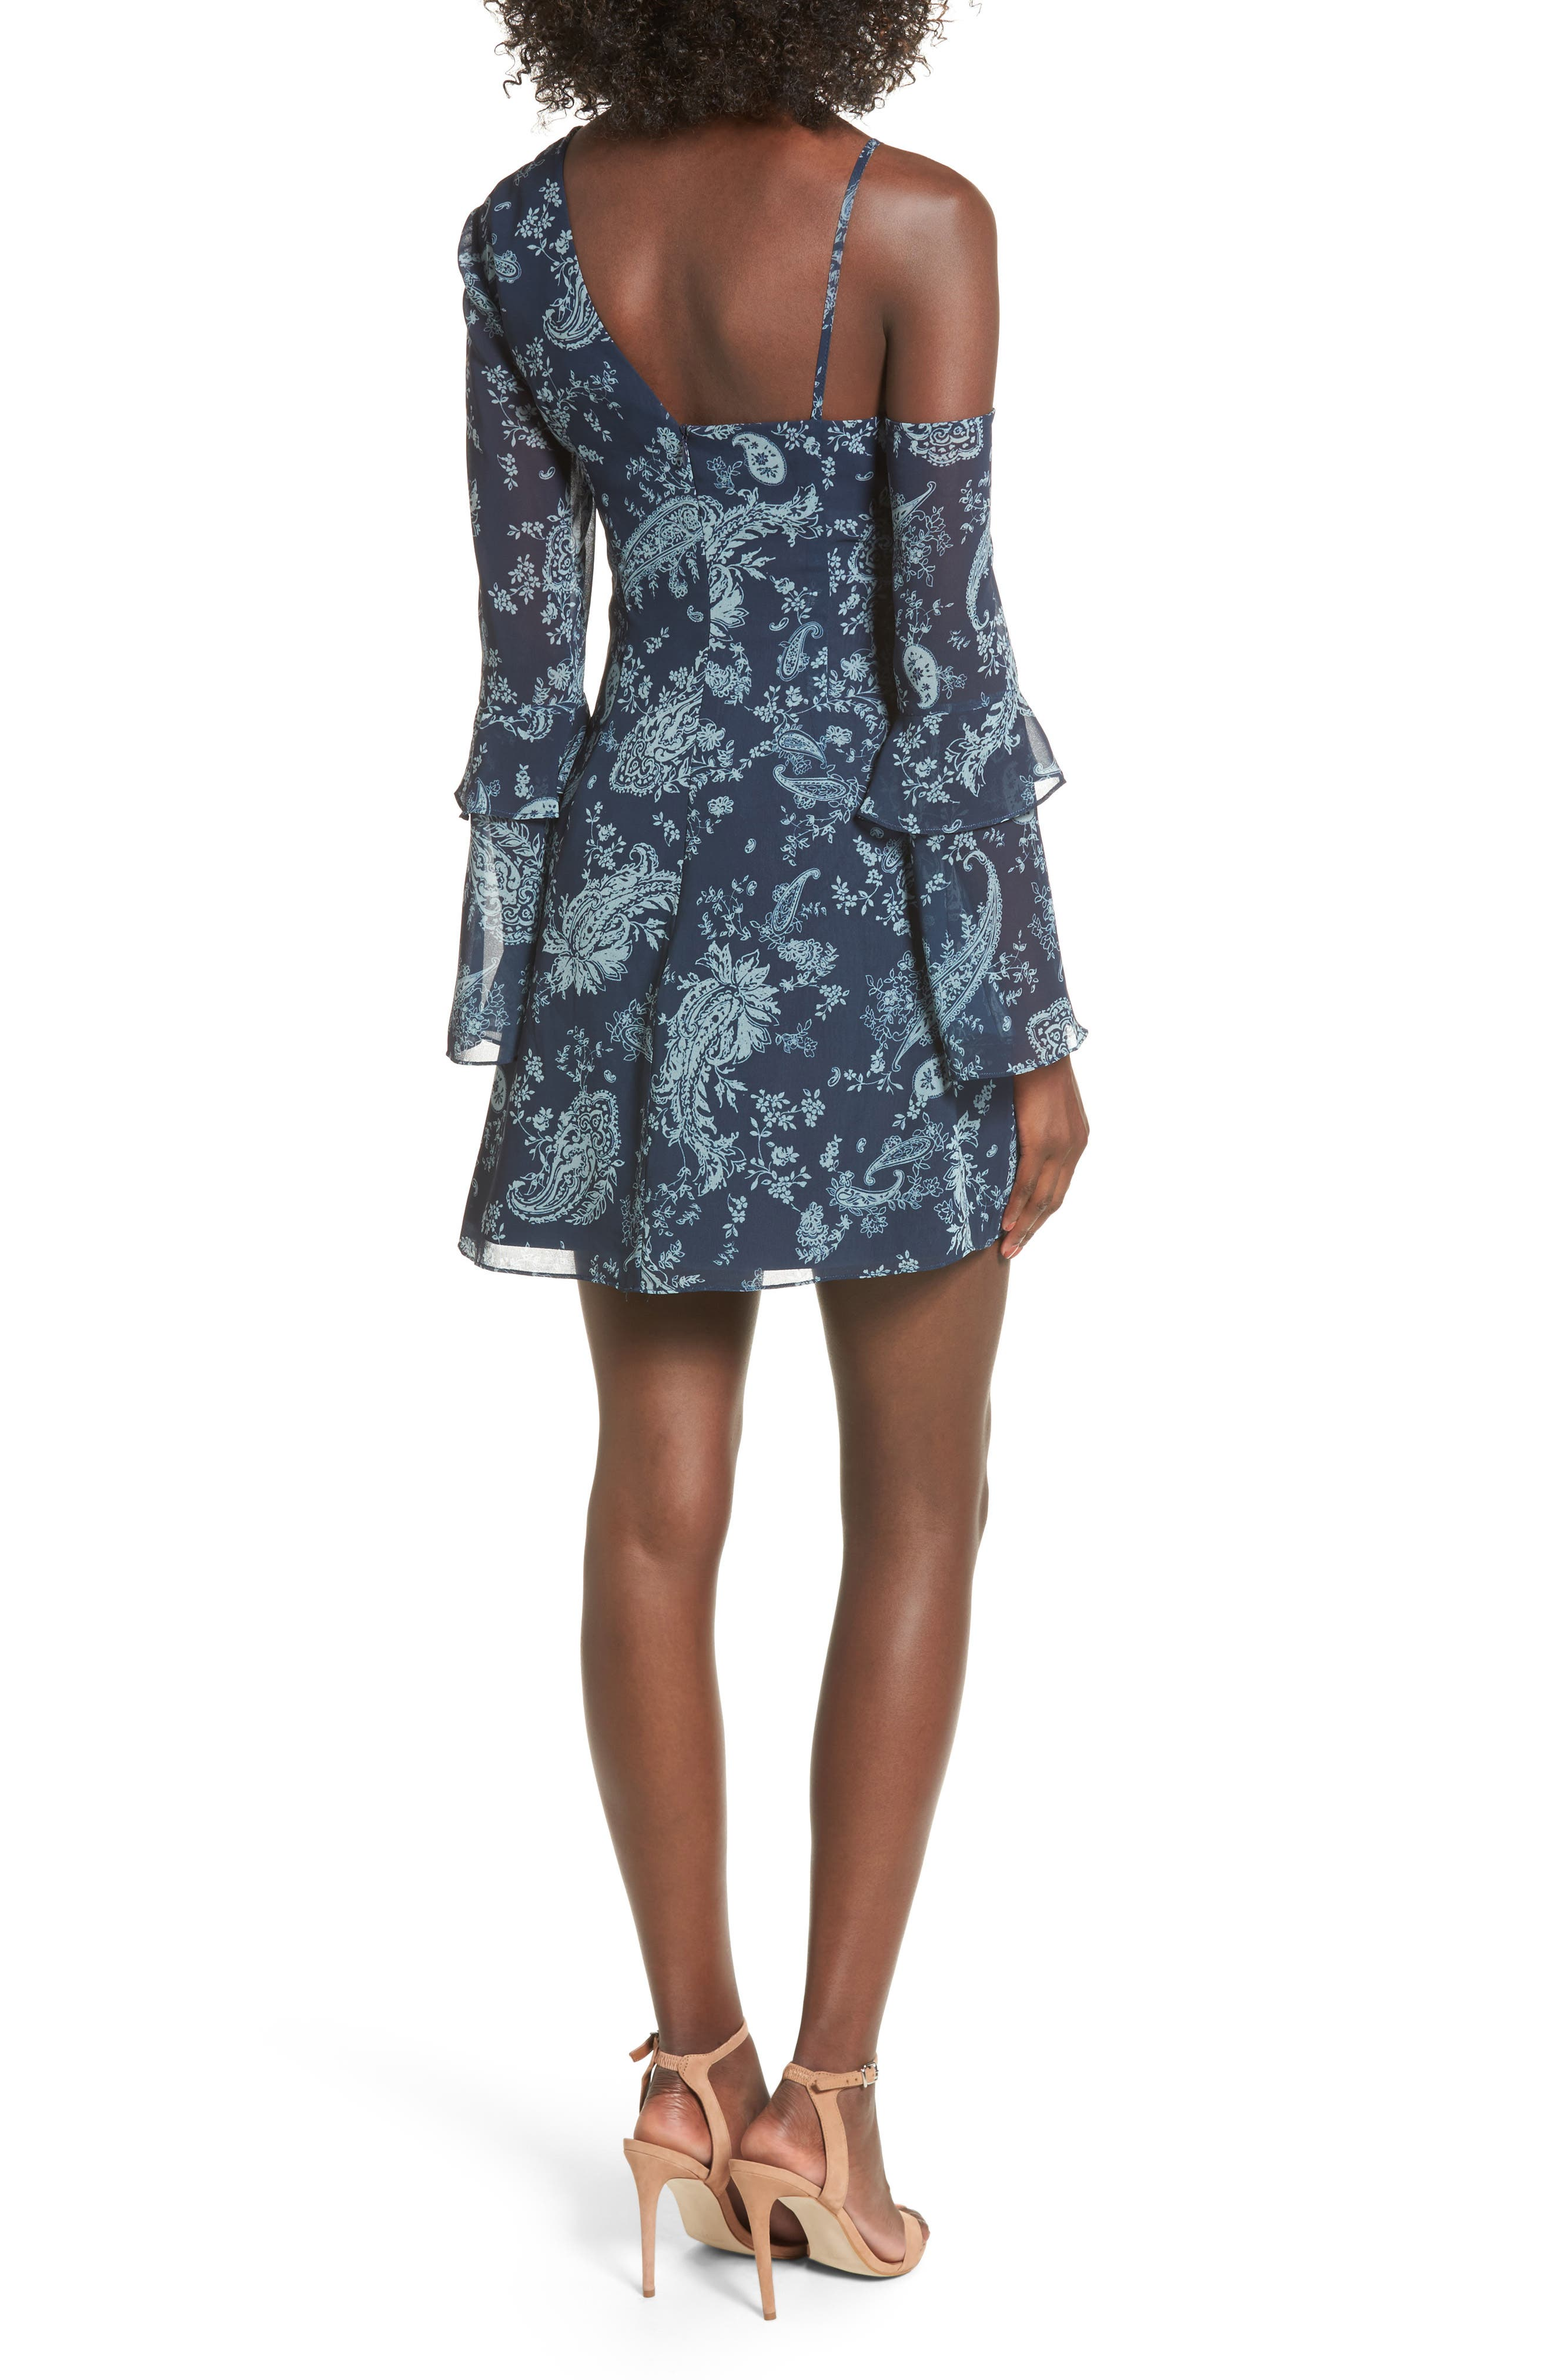 Go With It Minidress,                             Alternate thumbnail 2, color,                             Navy Paisley